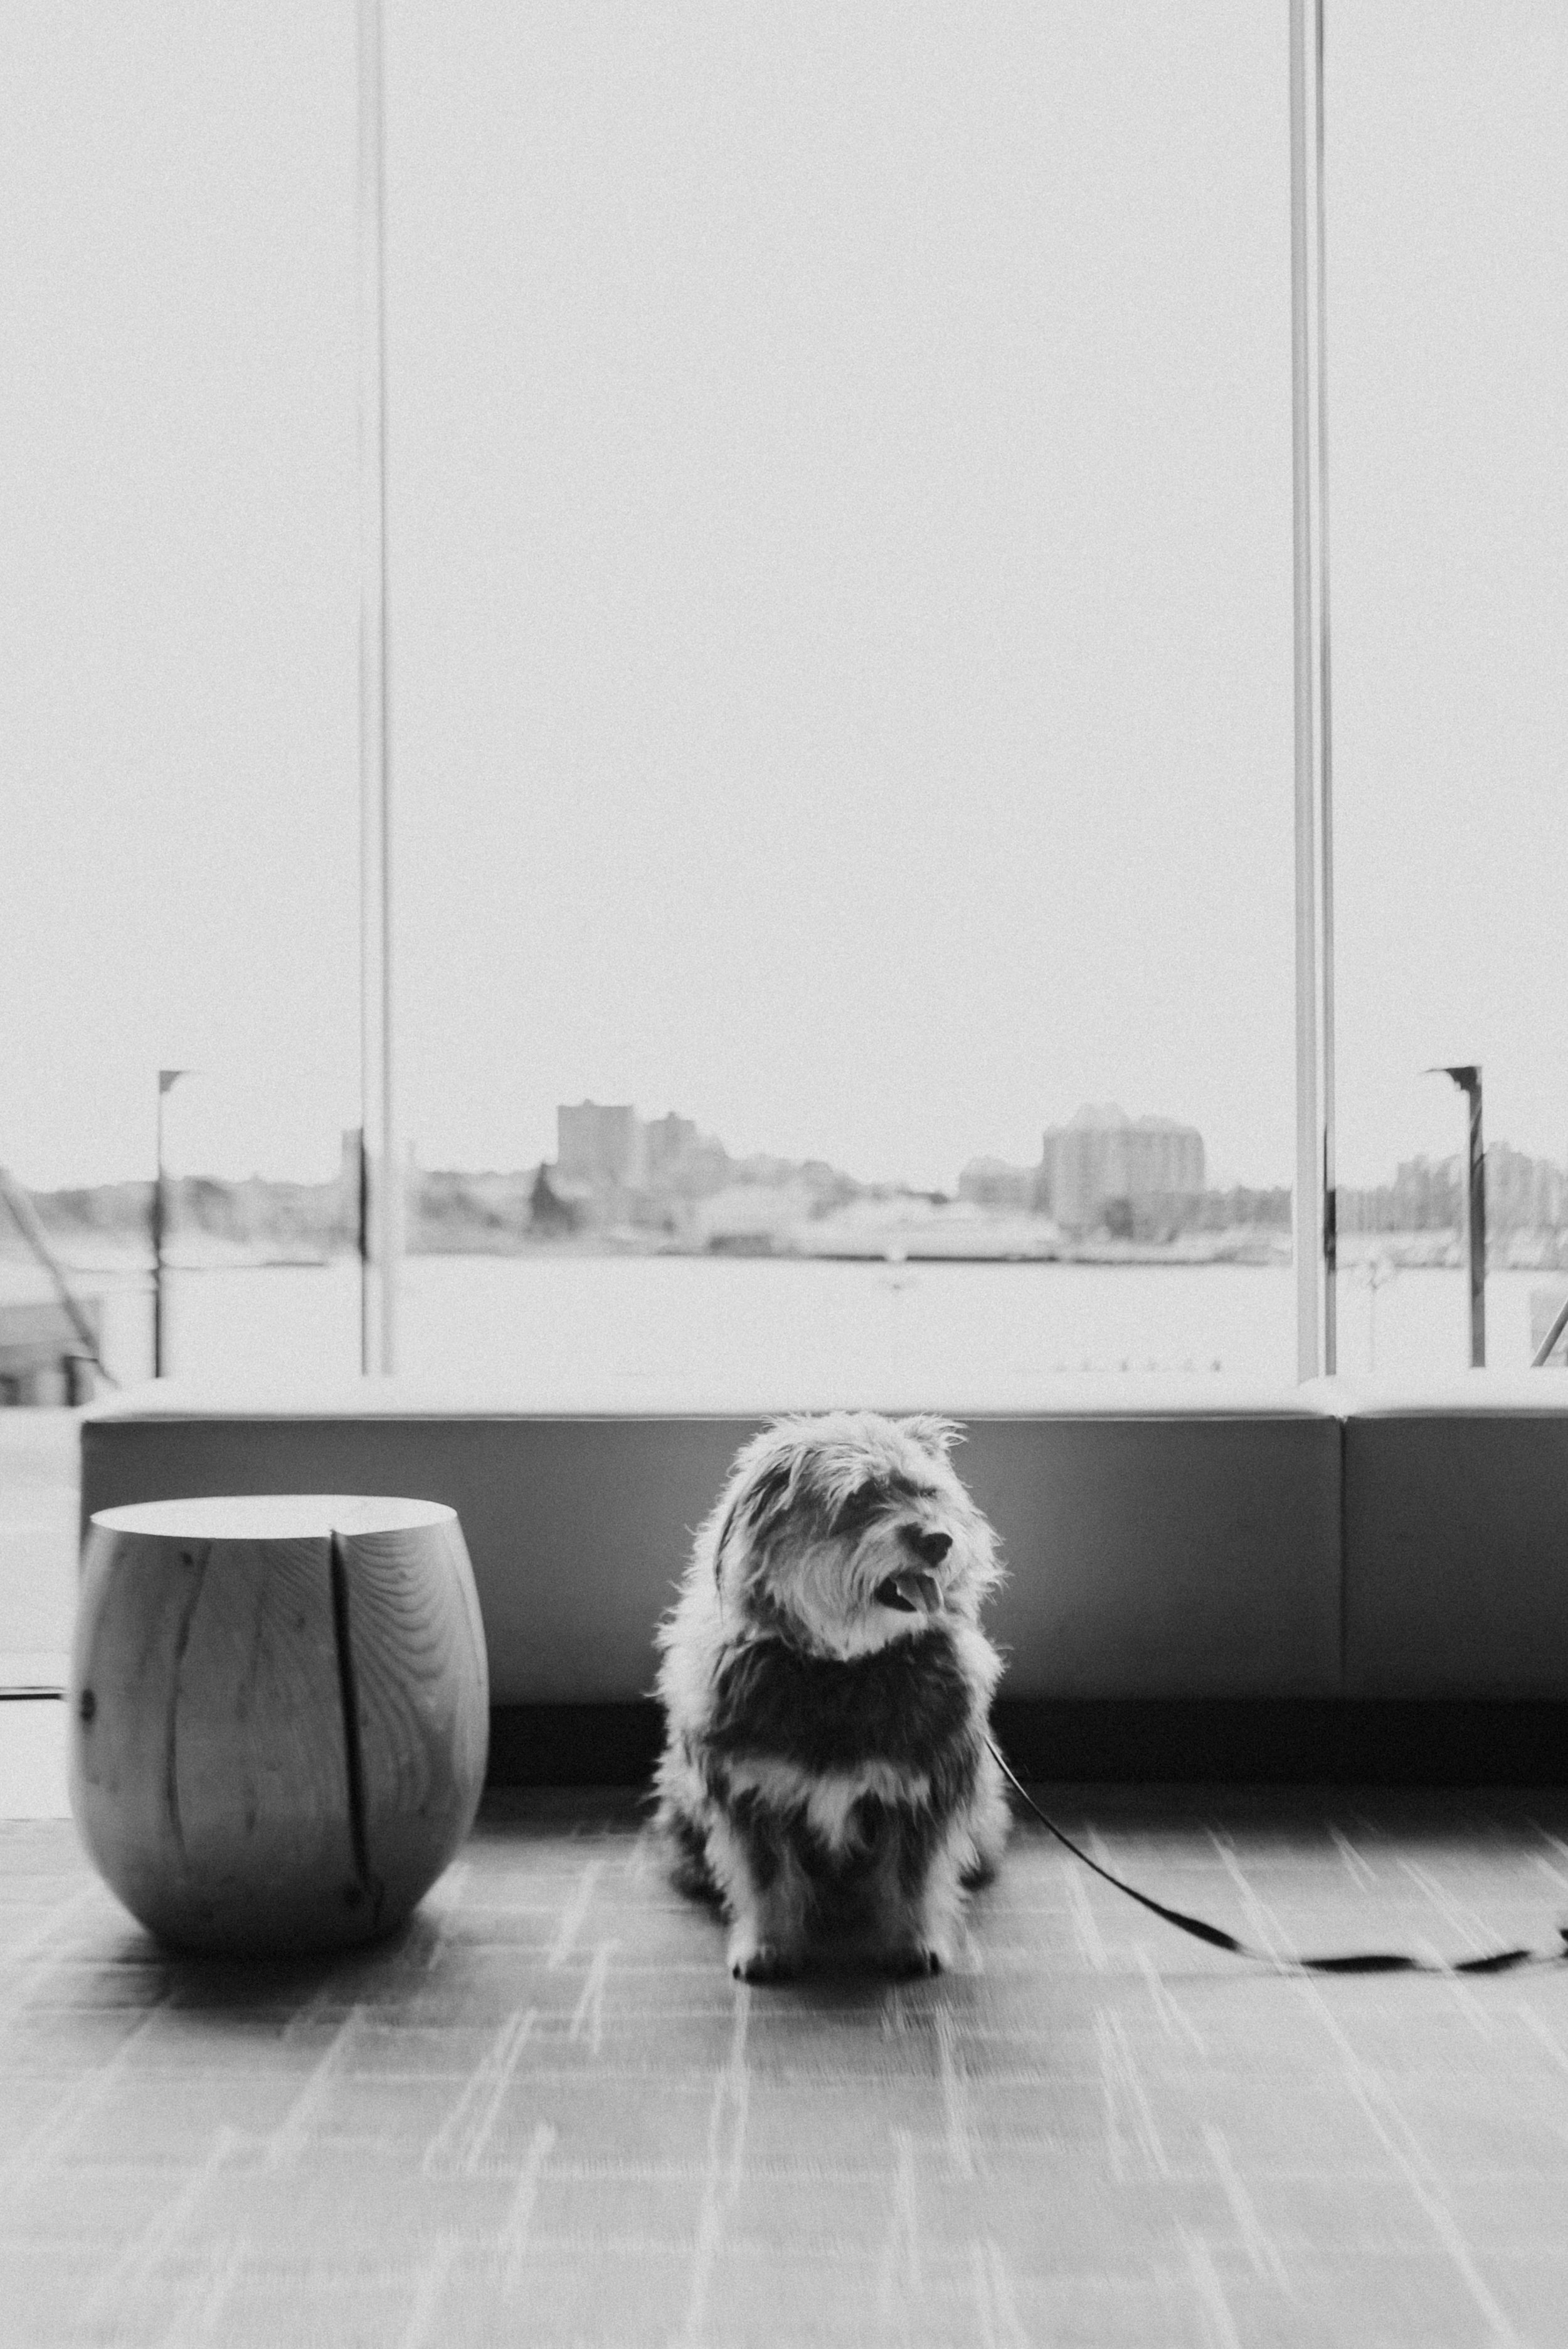 The obligitory artsy black and white shot. Mum was inspired by the pretty light!Here I am sitting in the lobby with my pops. I've been getting a lot of head pats and ear rubs!